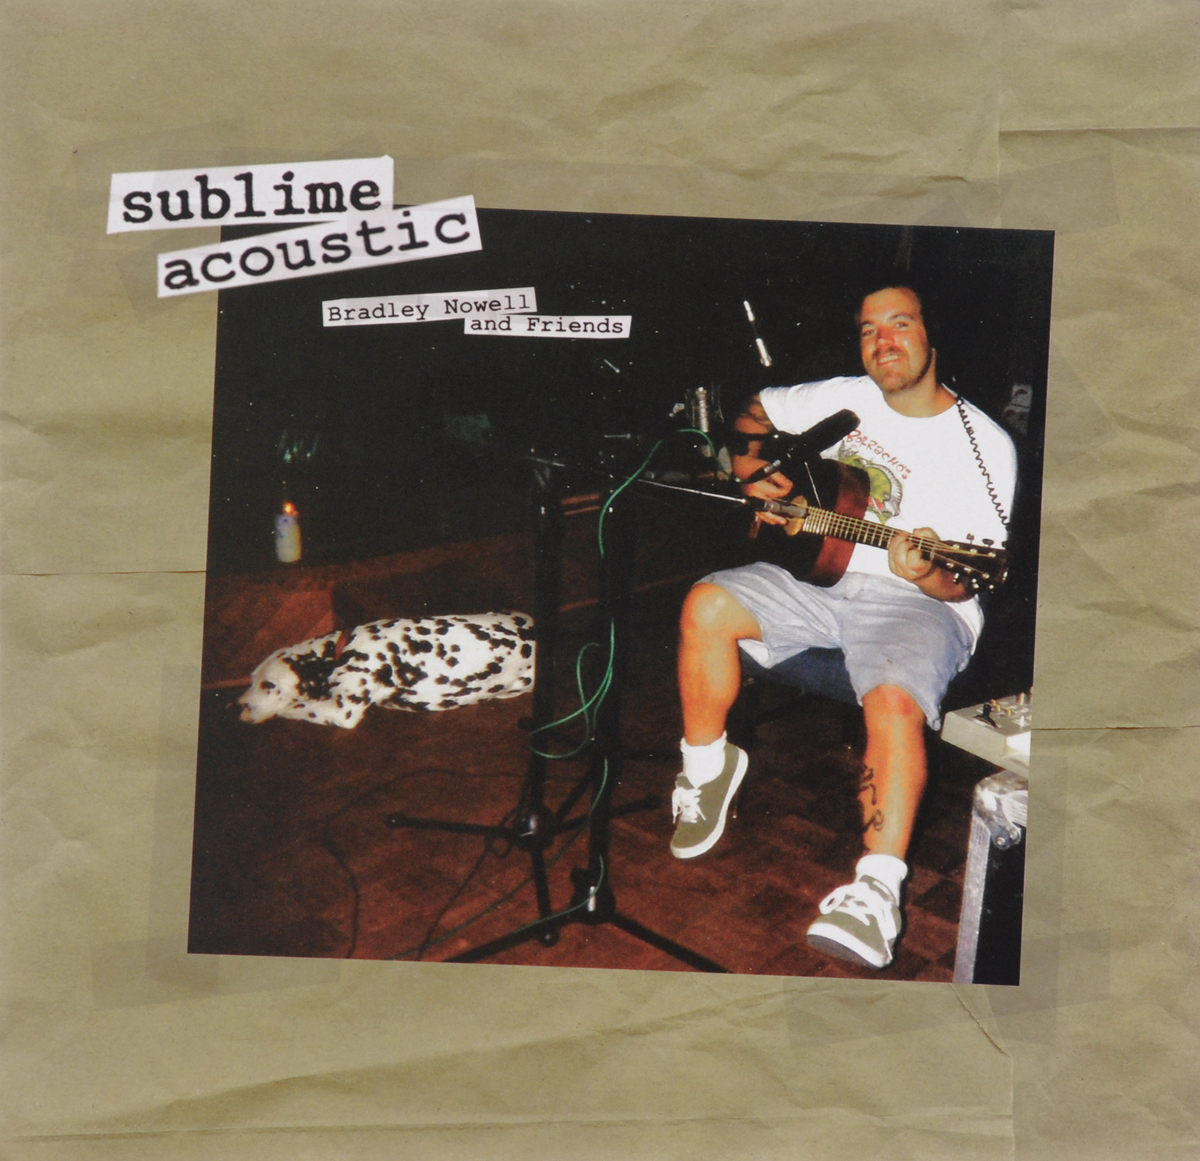 Sublime Sublime. Sublime Acoustic. Bradley Nowell And Friends (LP) sublime sublime gold definitive collection 2 cd